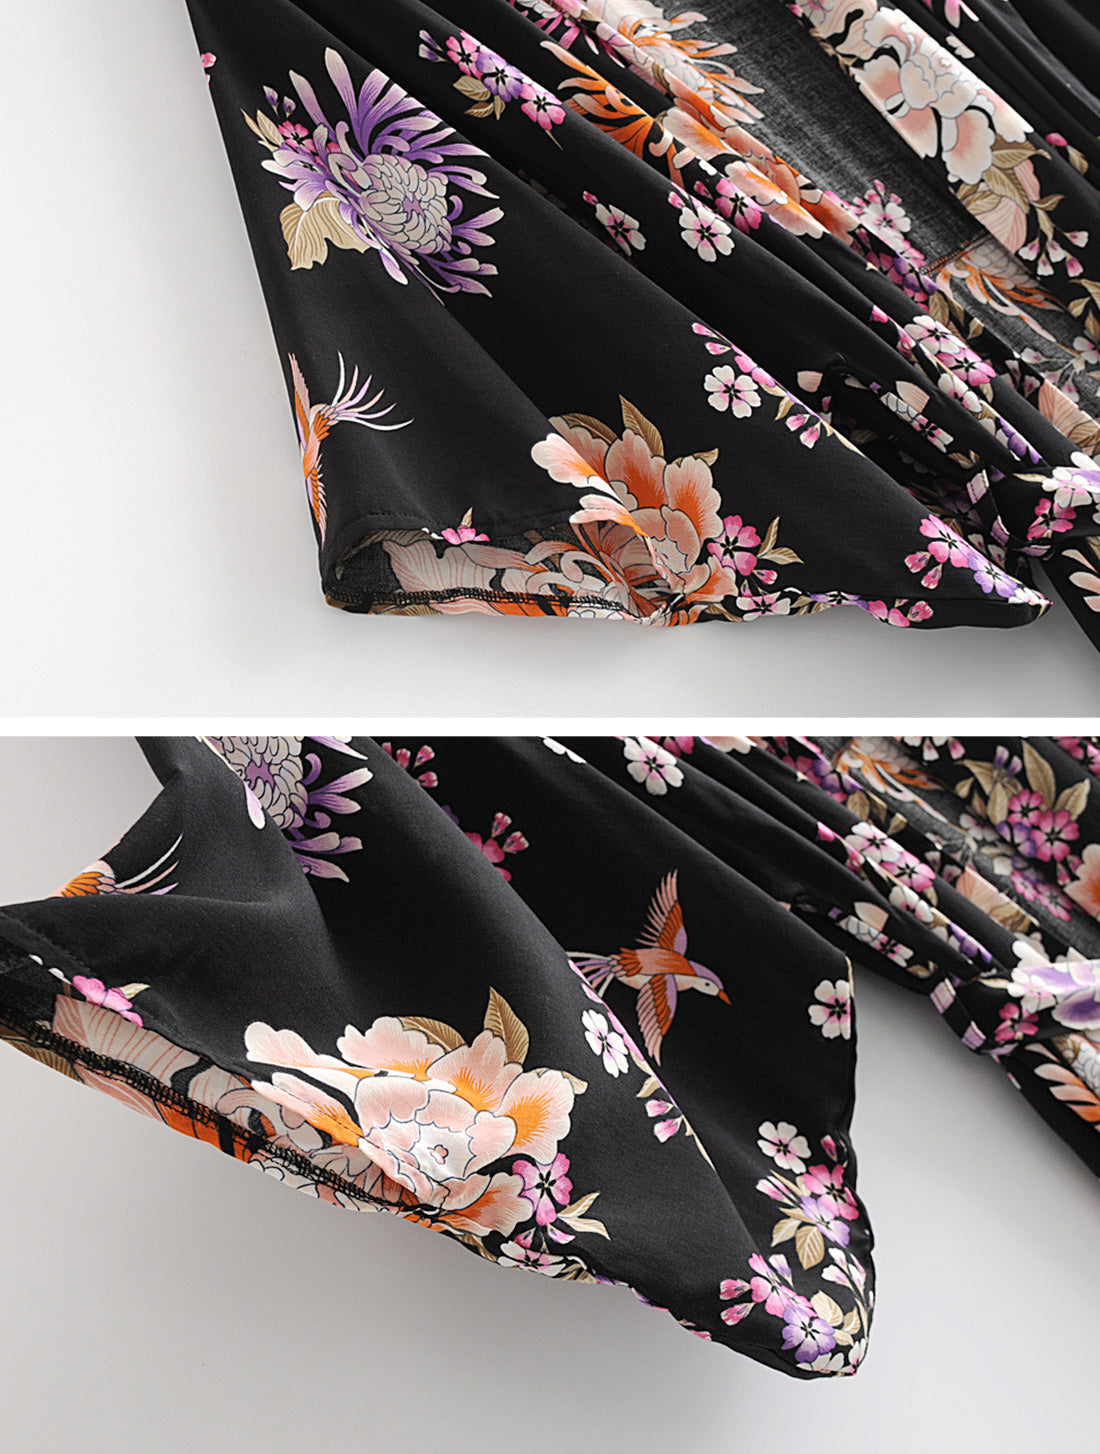 Simple As Can Kimono Robe Details 3